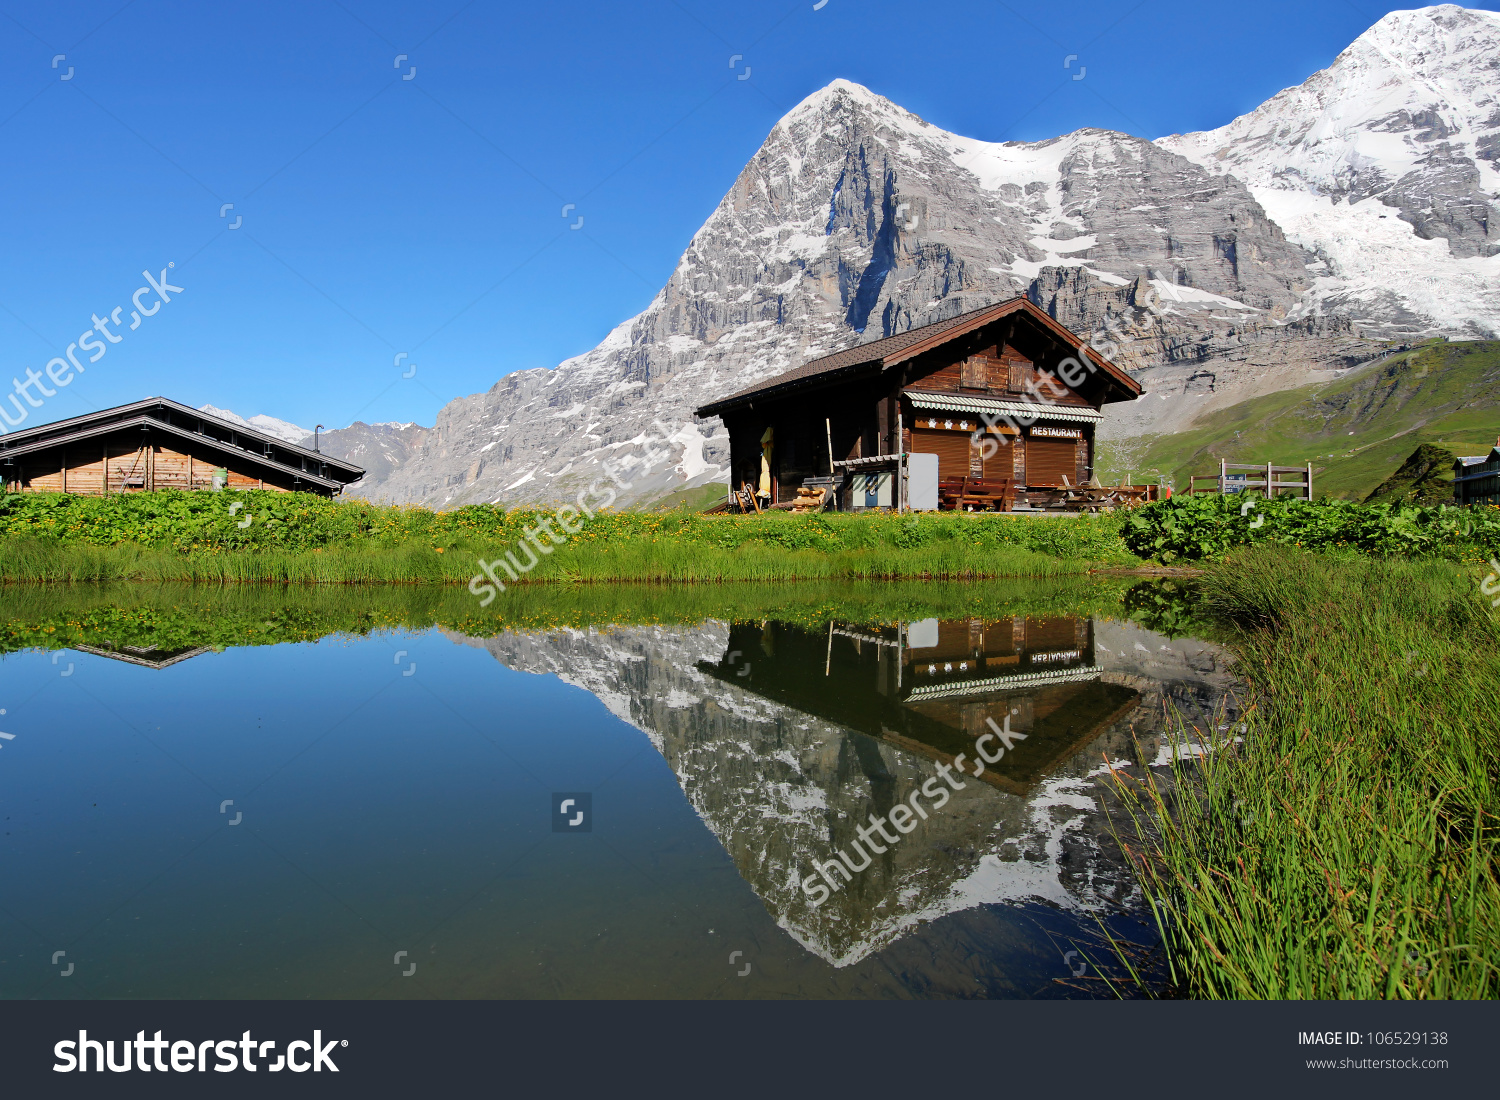 Swiss Mountain Chalet Reflecting Calm Pond Stock Photo 106529138.